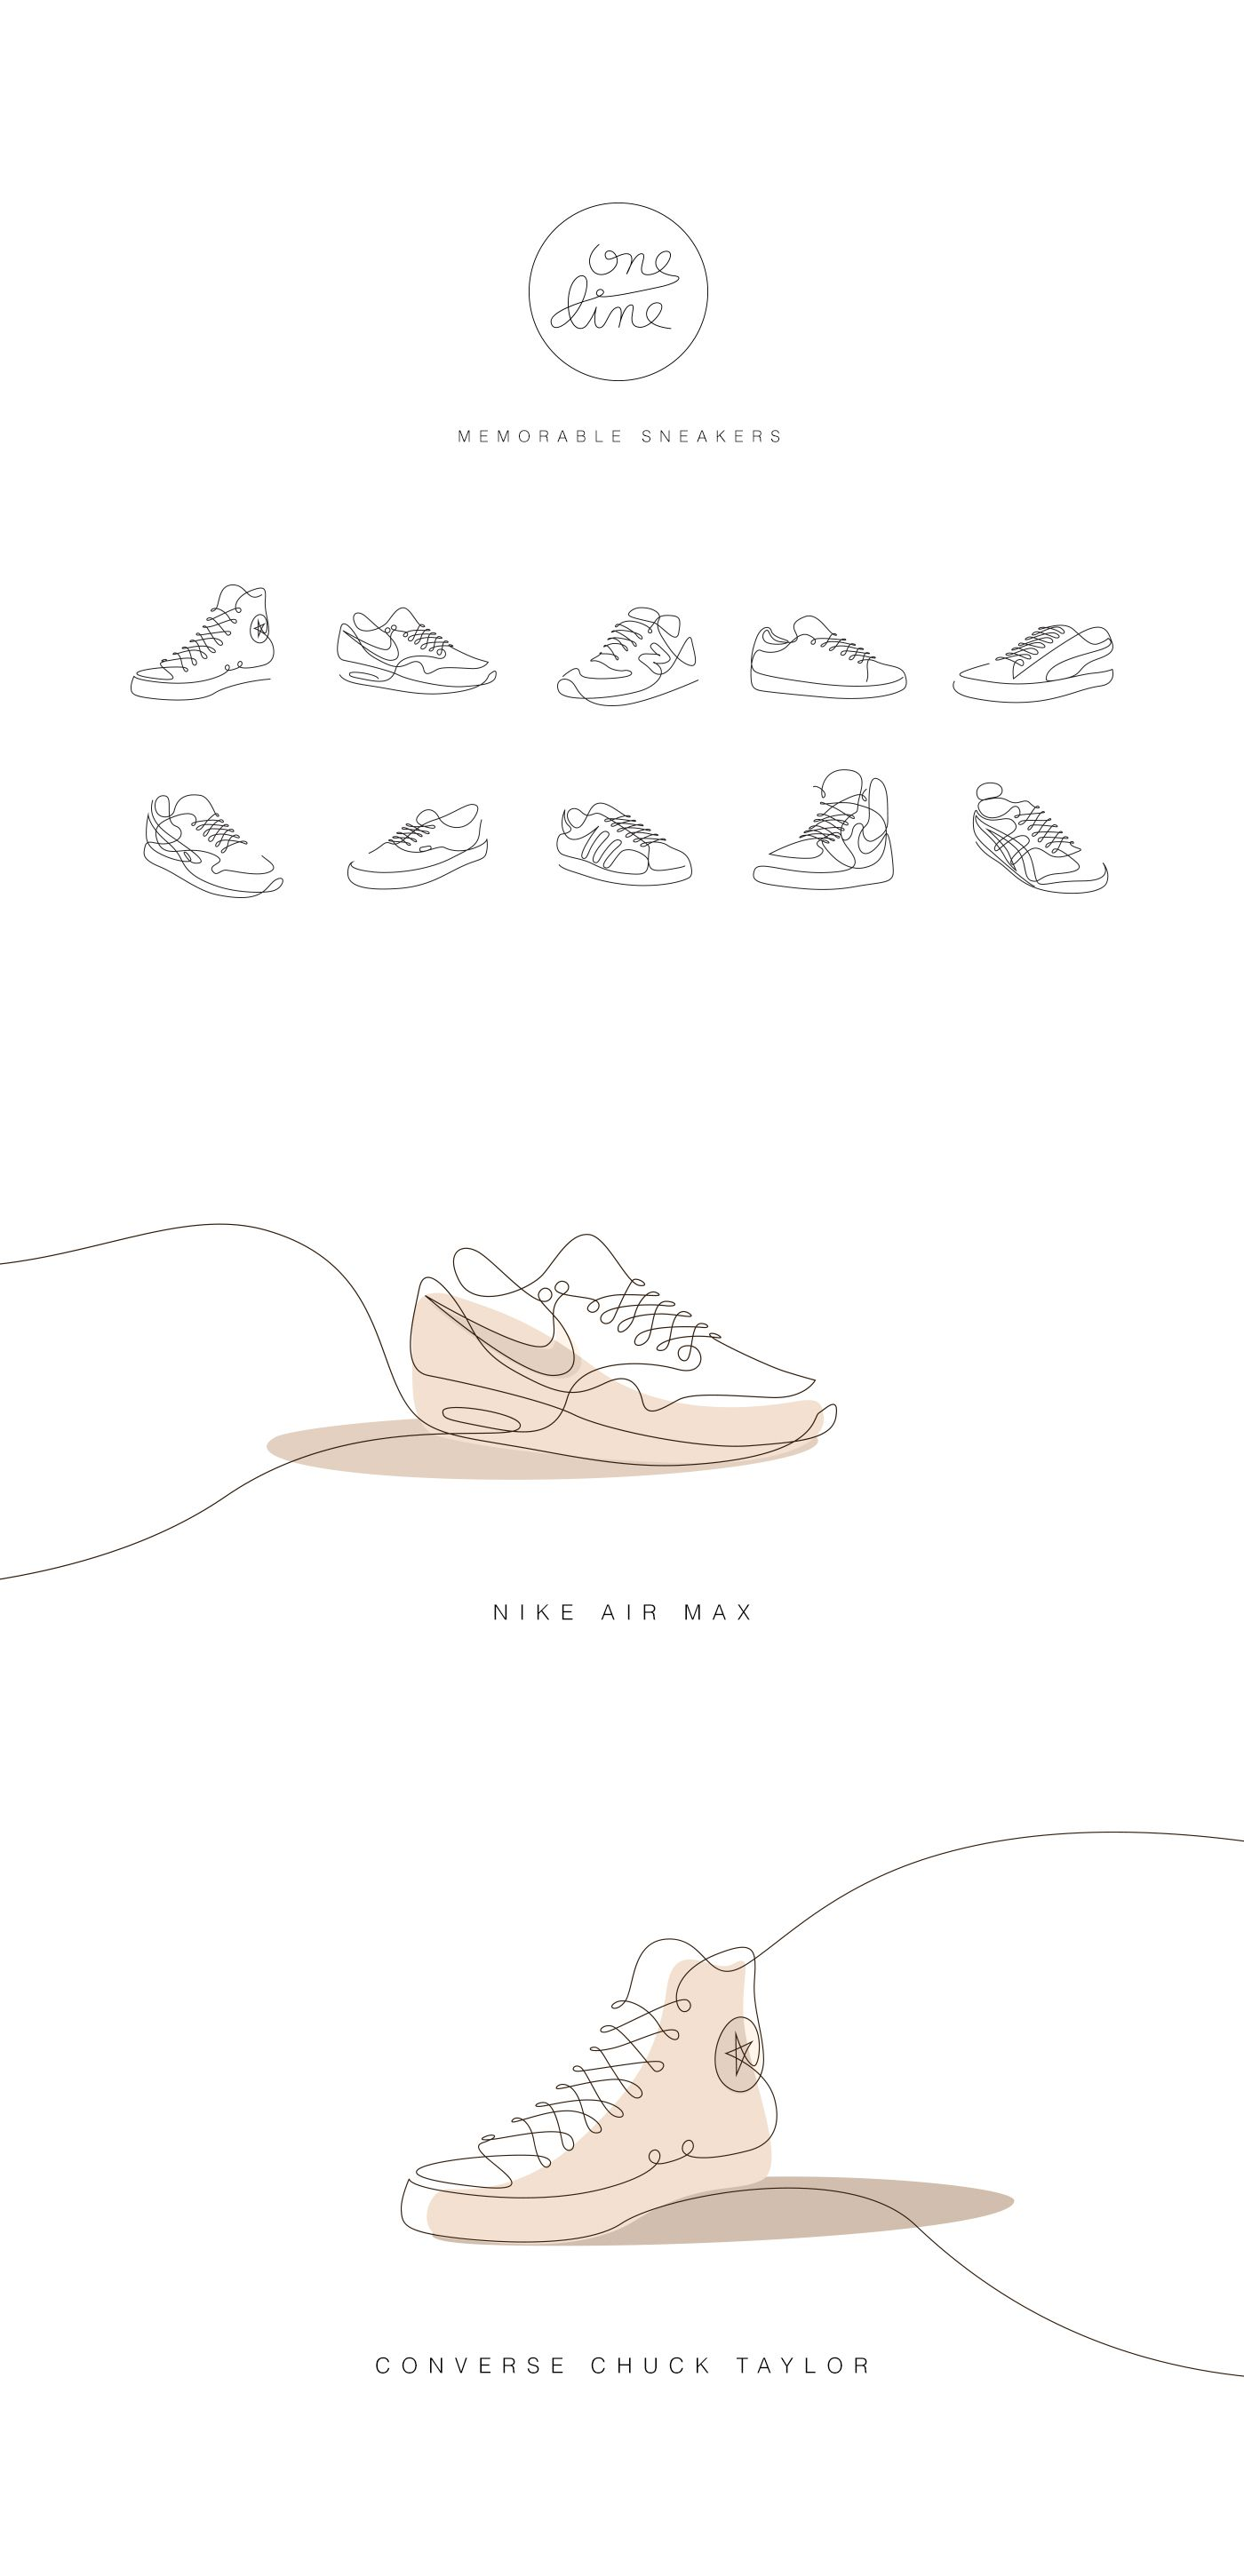 One Line / Memorable sneakers / by Differantly Studio